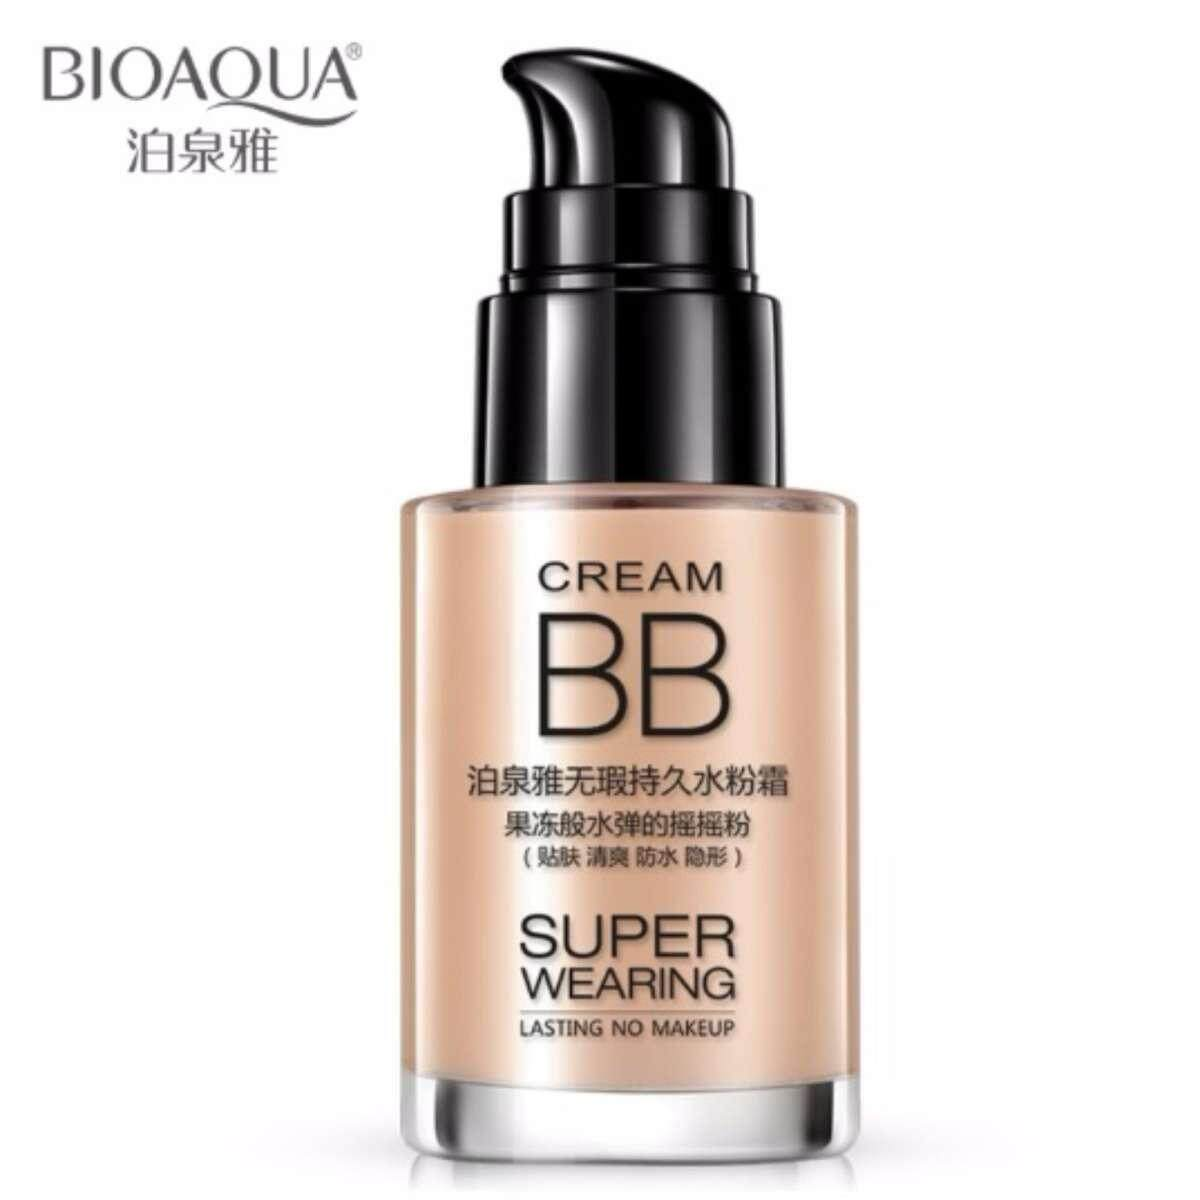 Bioaqua Persistent Bb Cream Foundation Whitening And Moisturizing Concealer Invisible Pores Easy On Makeup - Natural By Fly Automart.